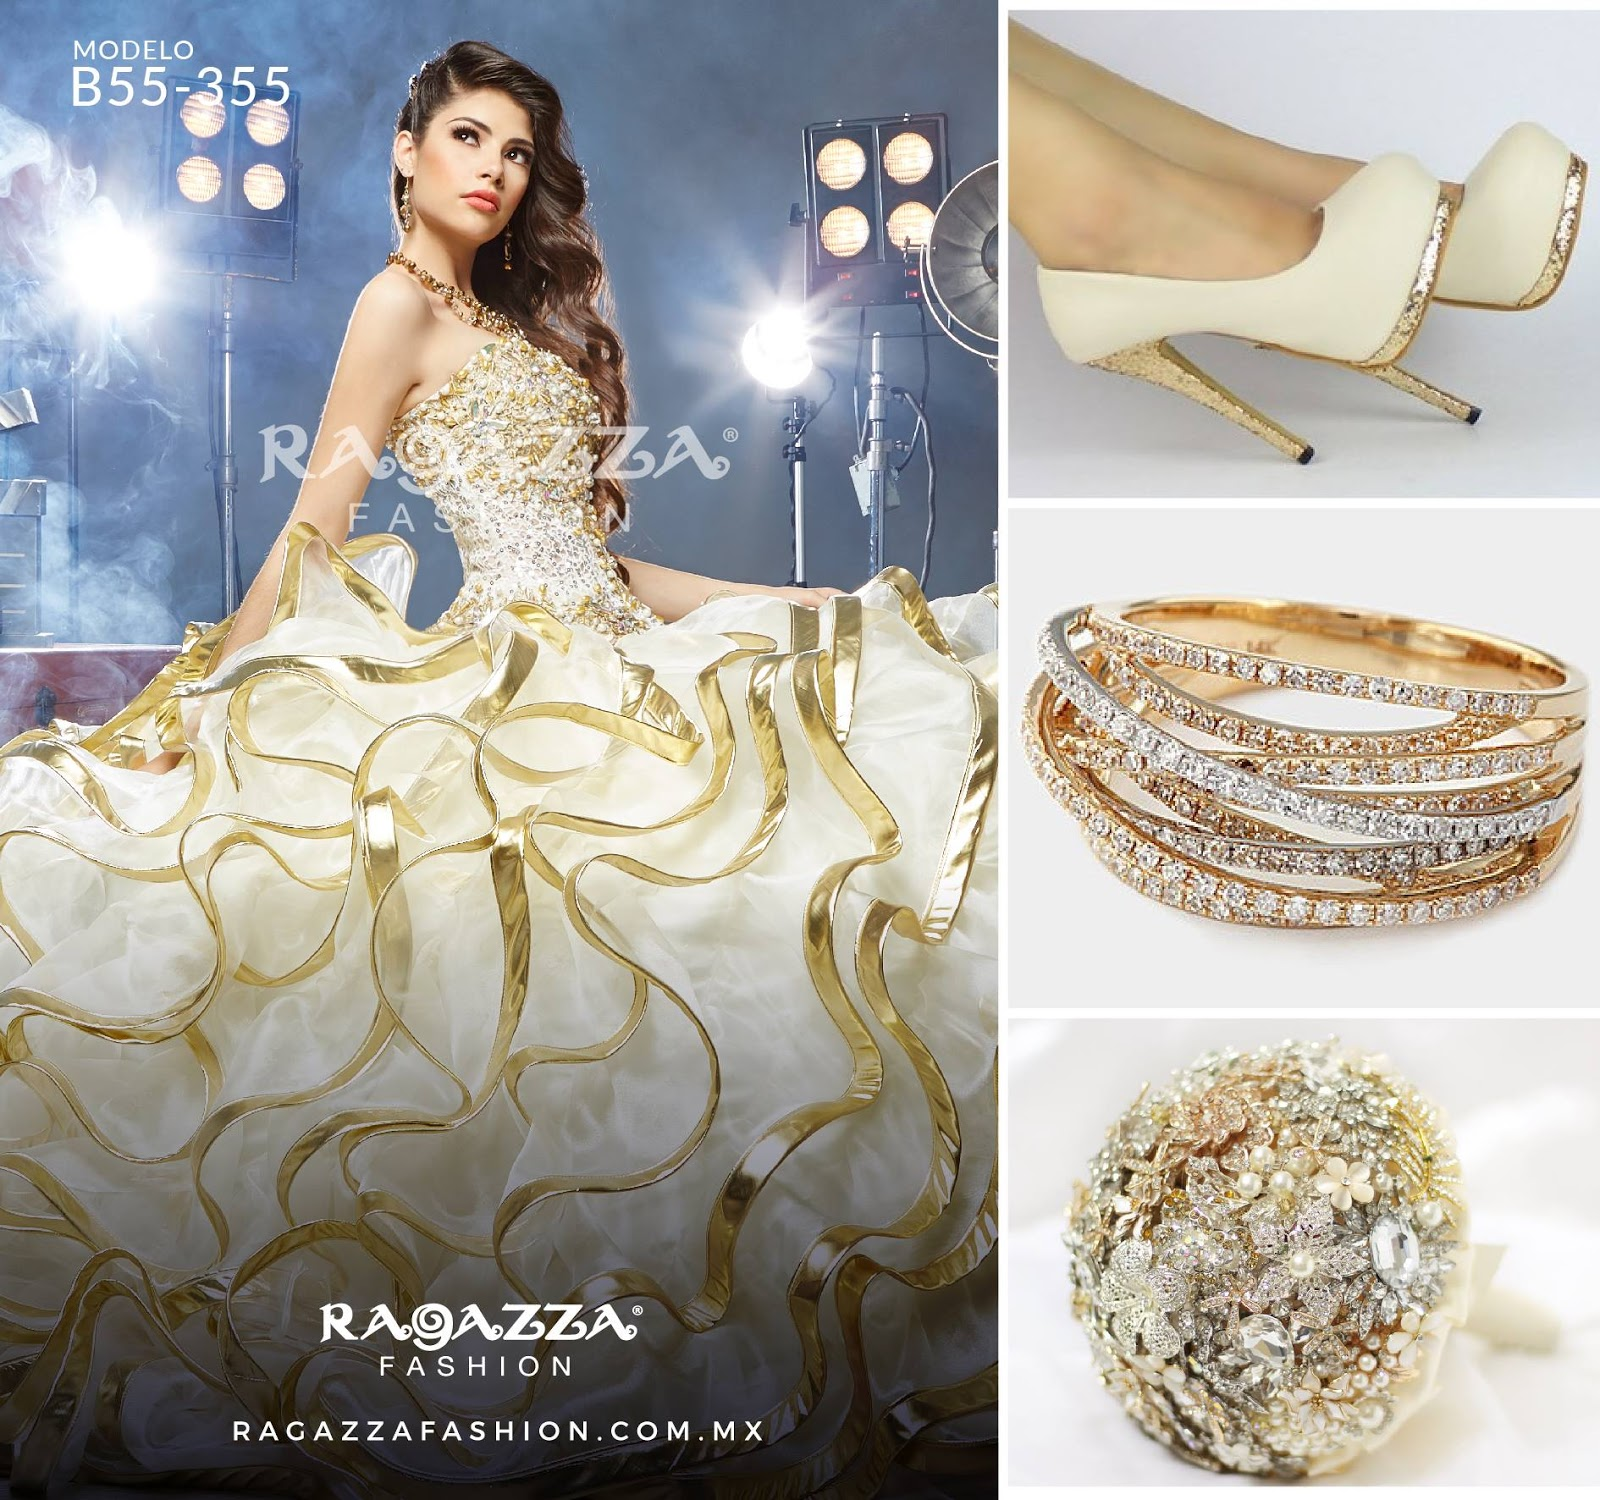 932be2af3a9 -2016 Ragazza Dresses. The Quince Dress